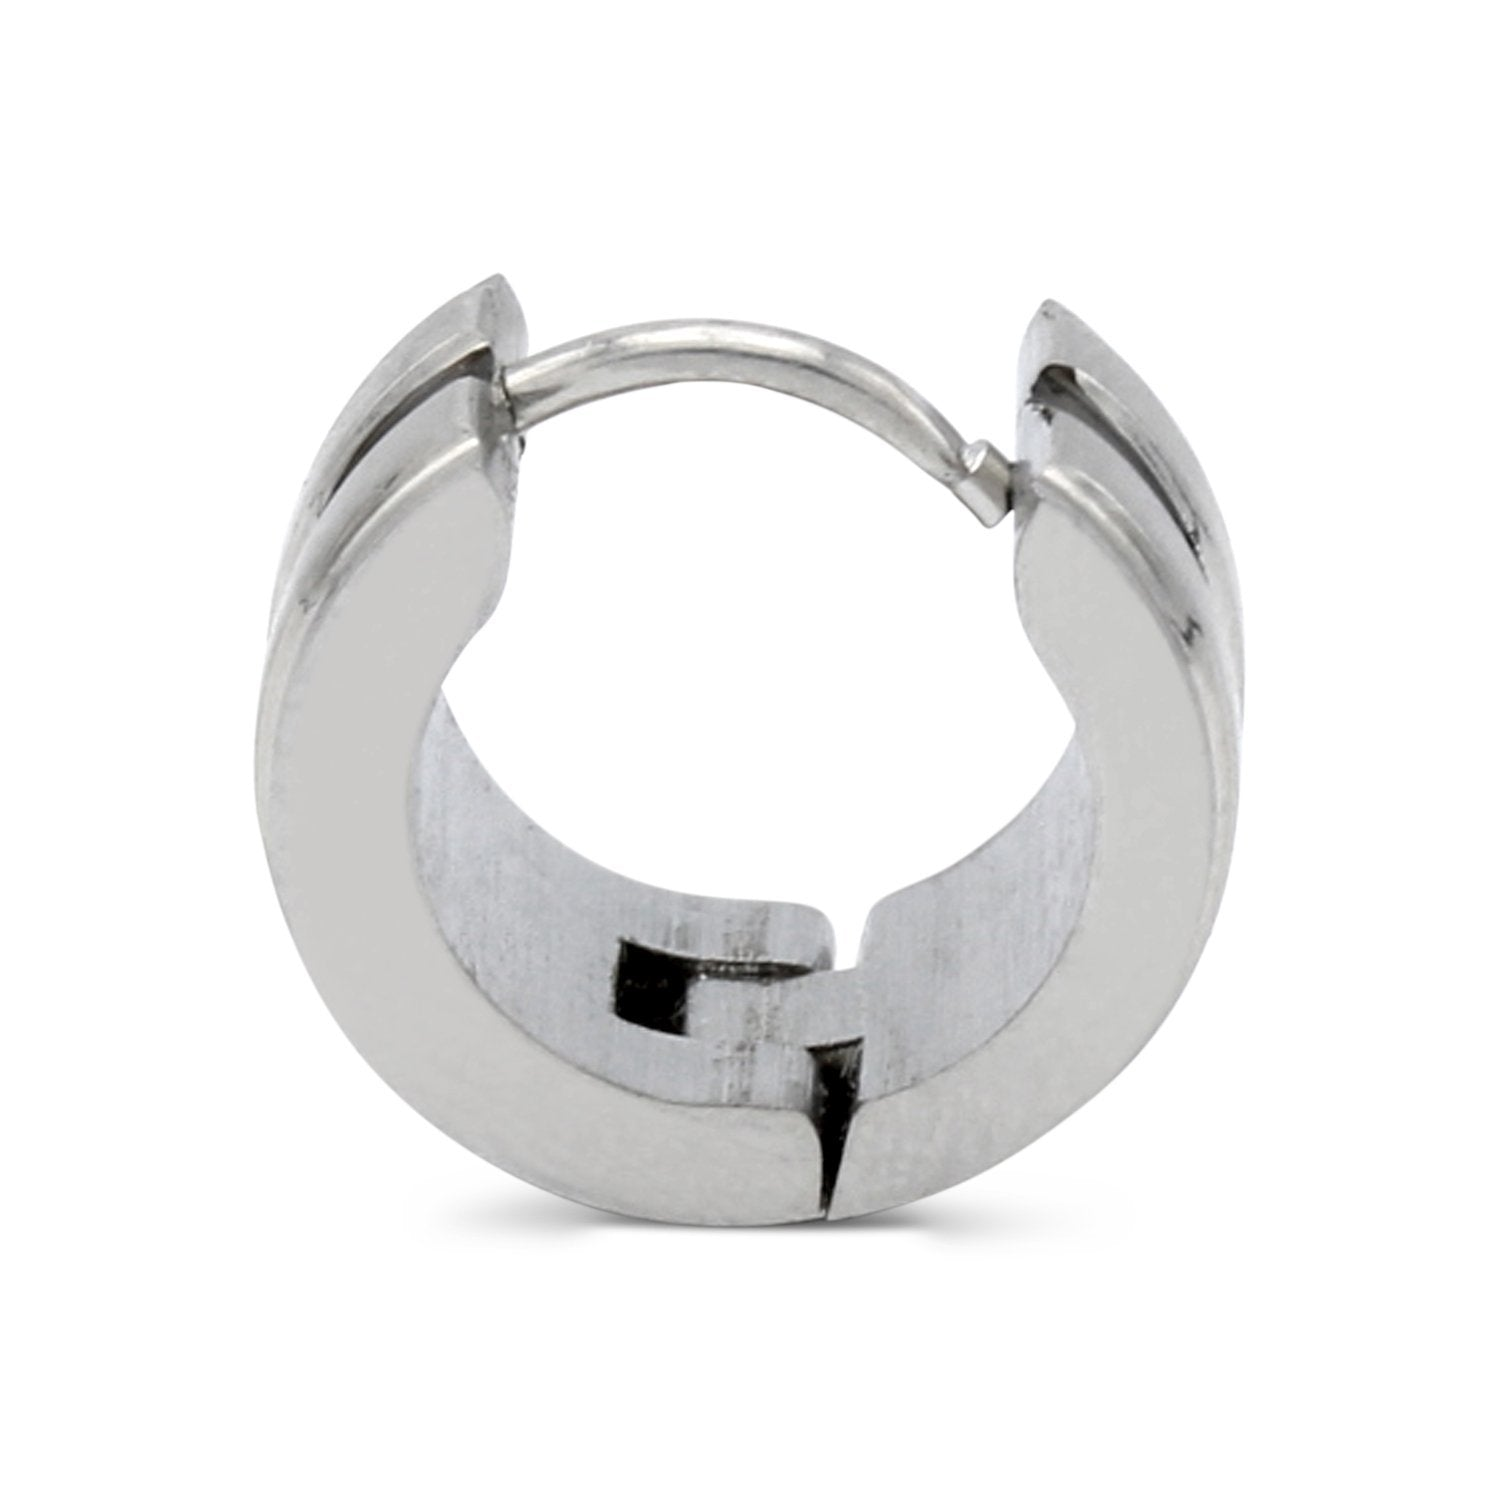 Huggie Wide Hoop Earrings Stainless Steel Fashion Jewelry